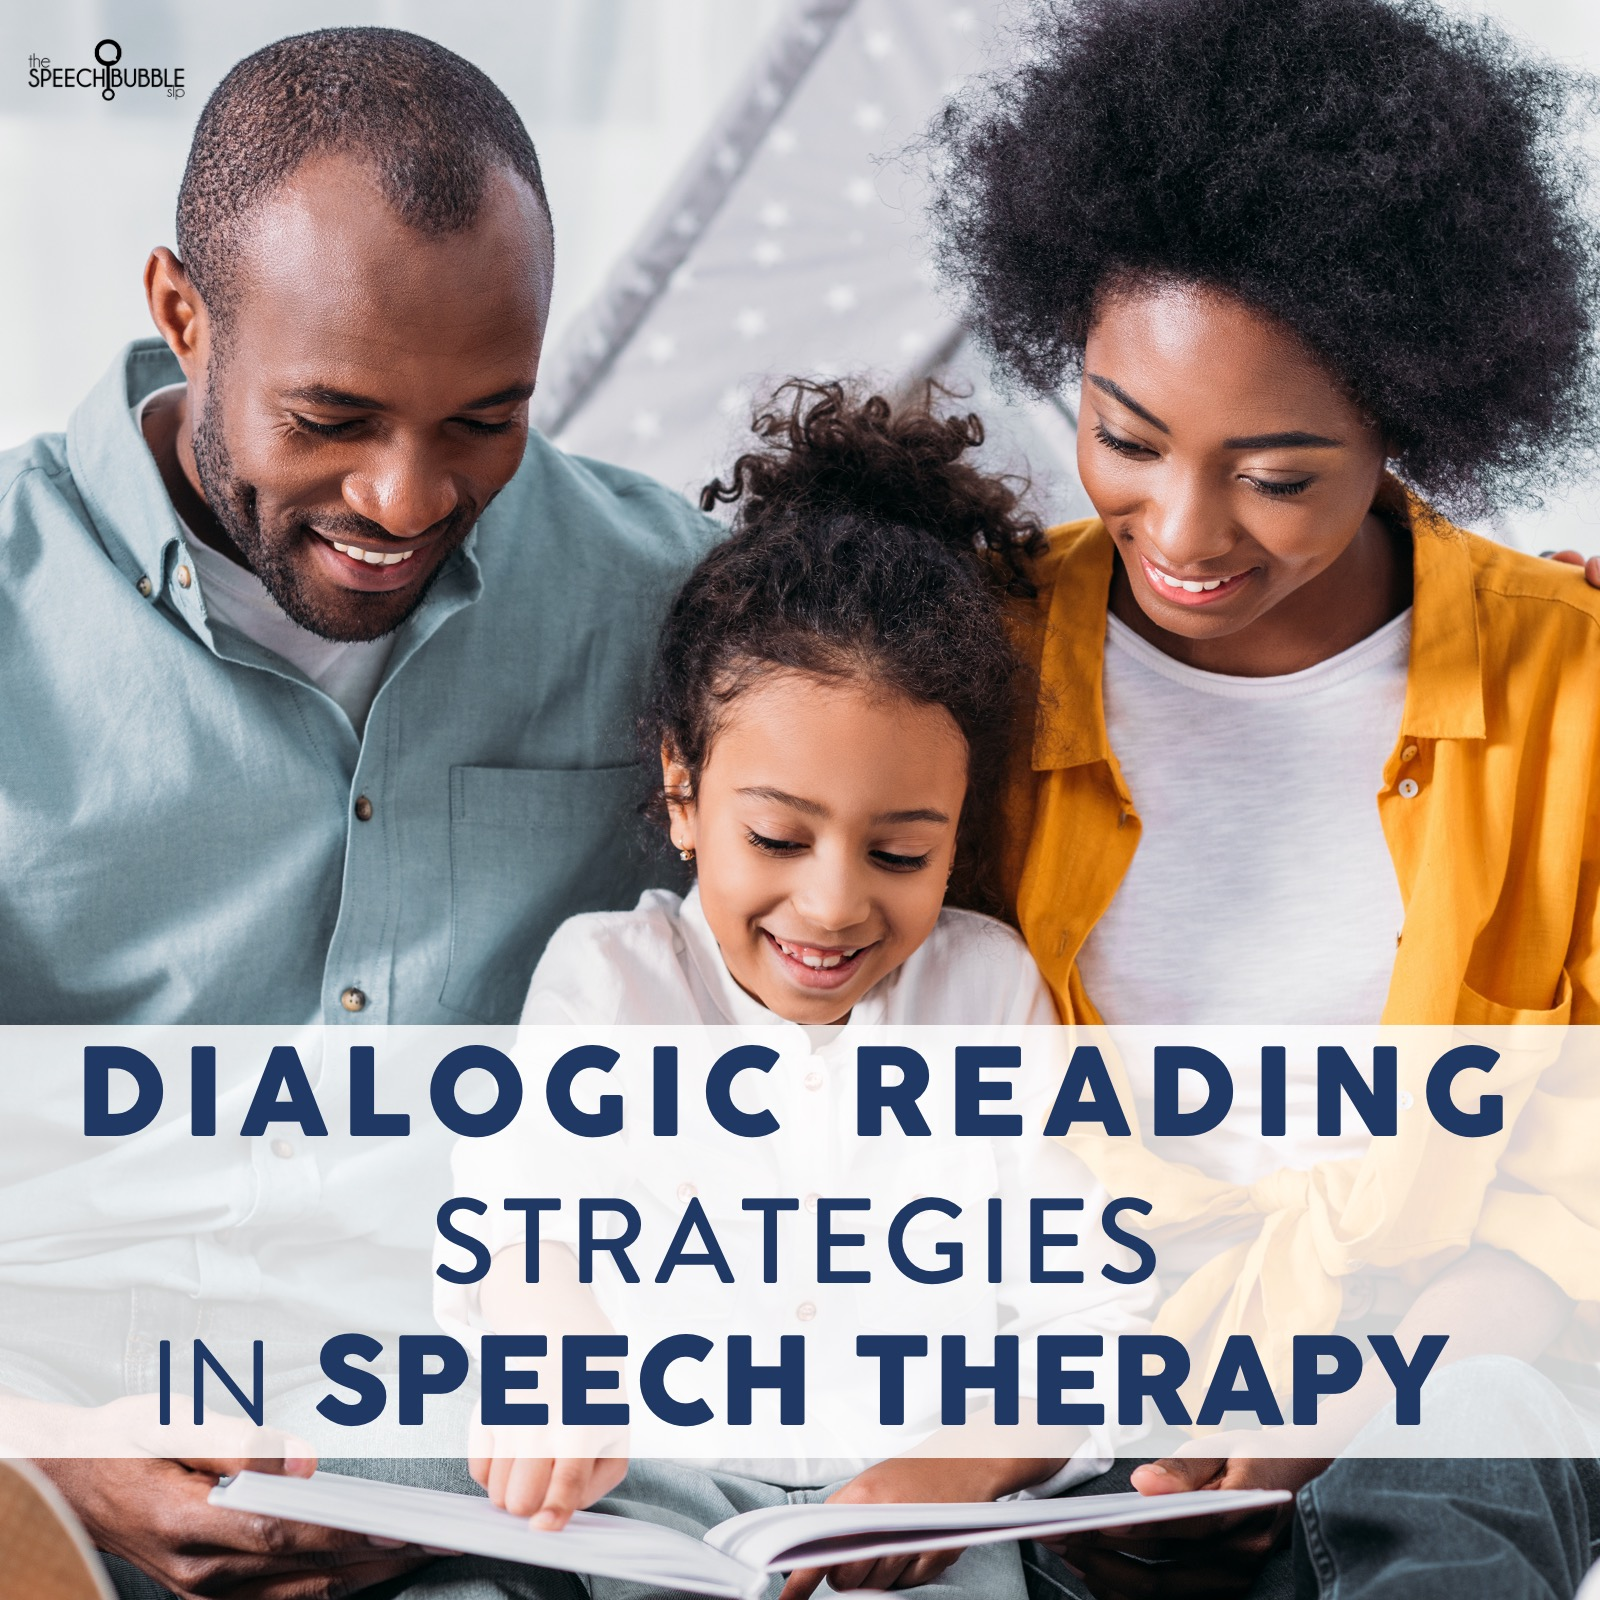 Dialogic Reading Strategies in Speech Therapy